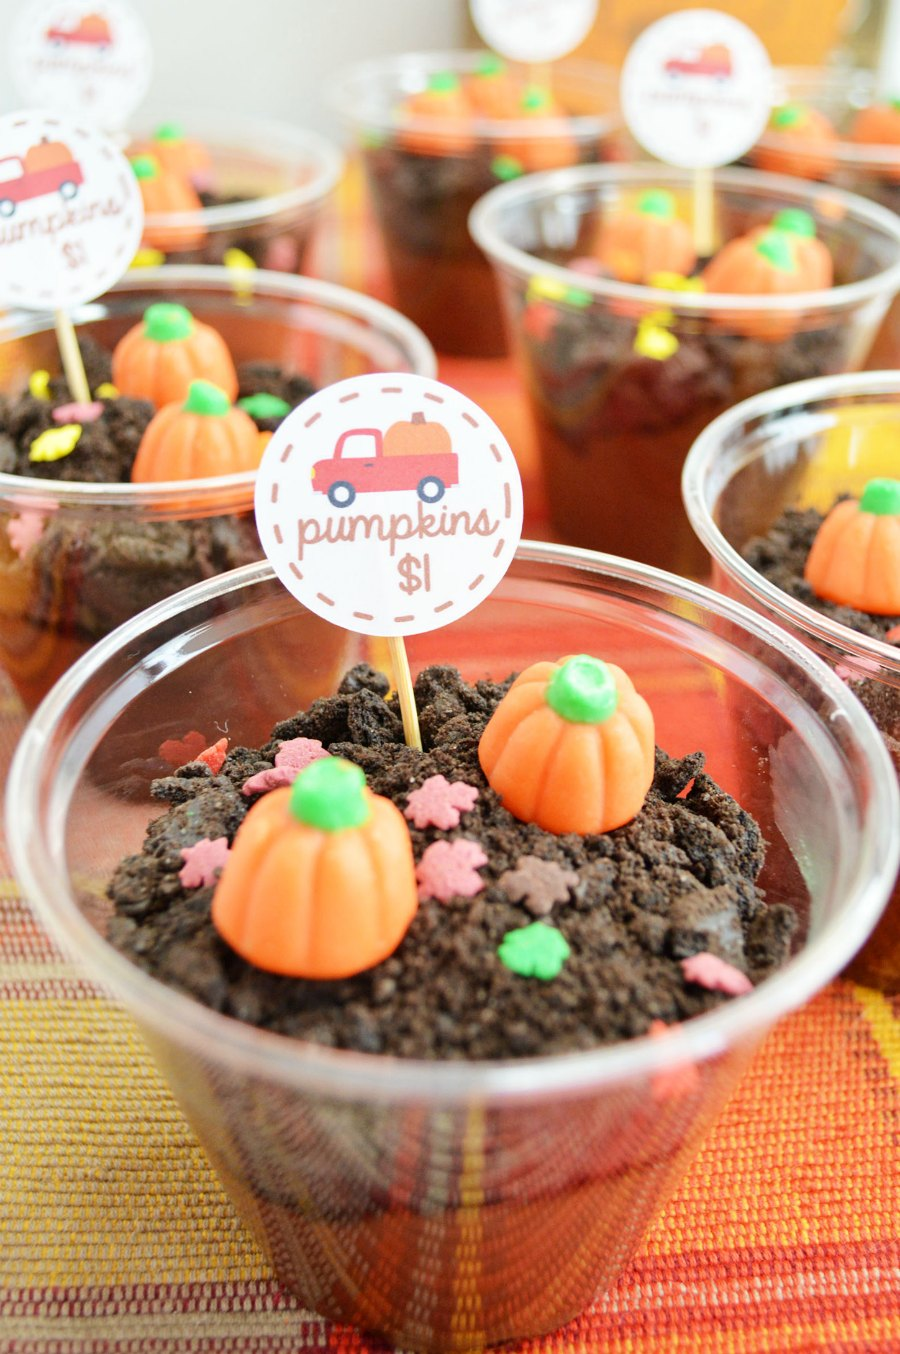 close up of plastic cups filled with dirt pudding and cute pumpkin decorations